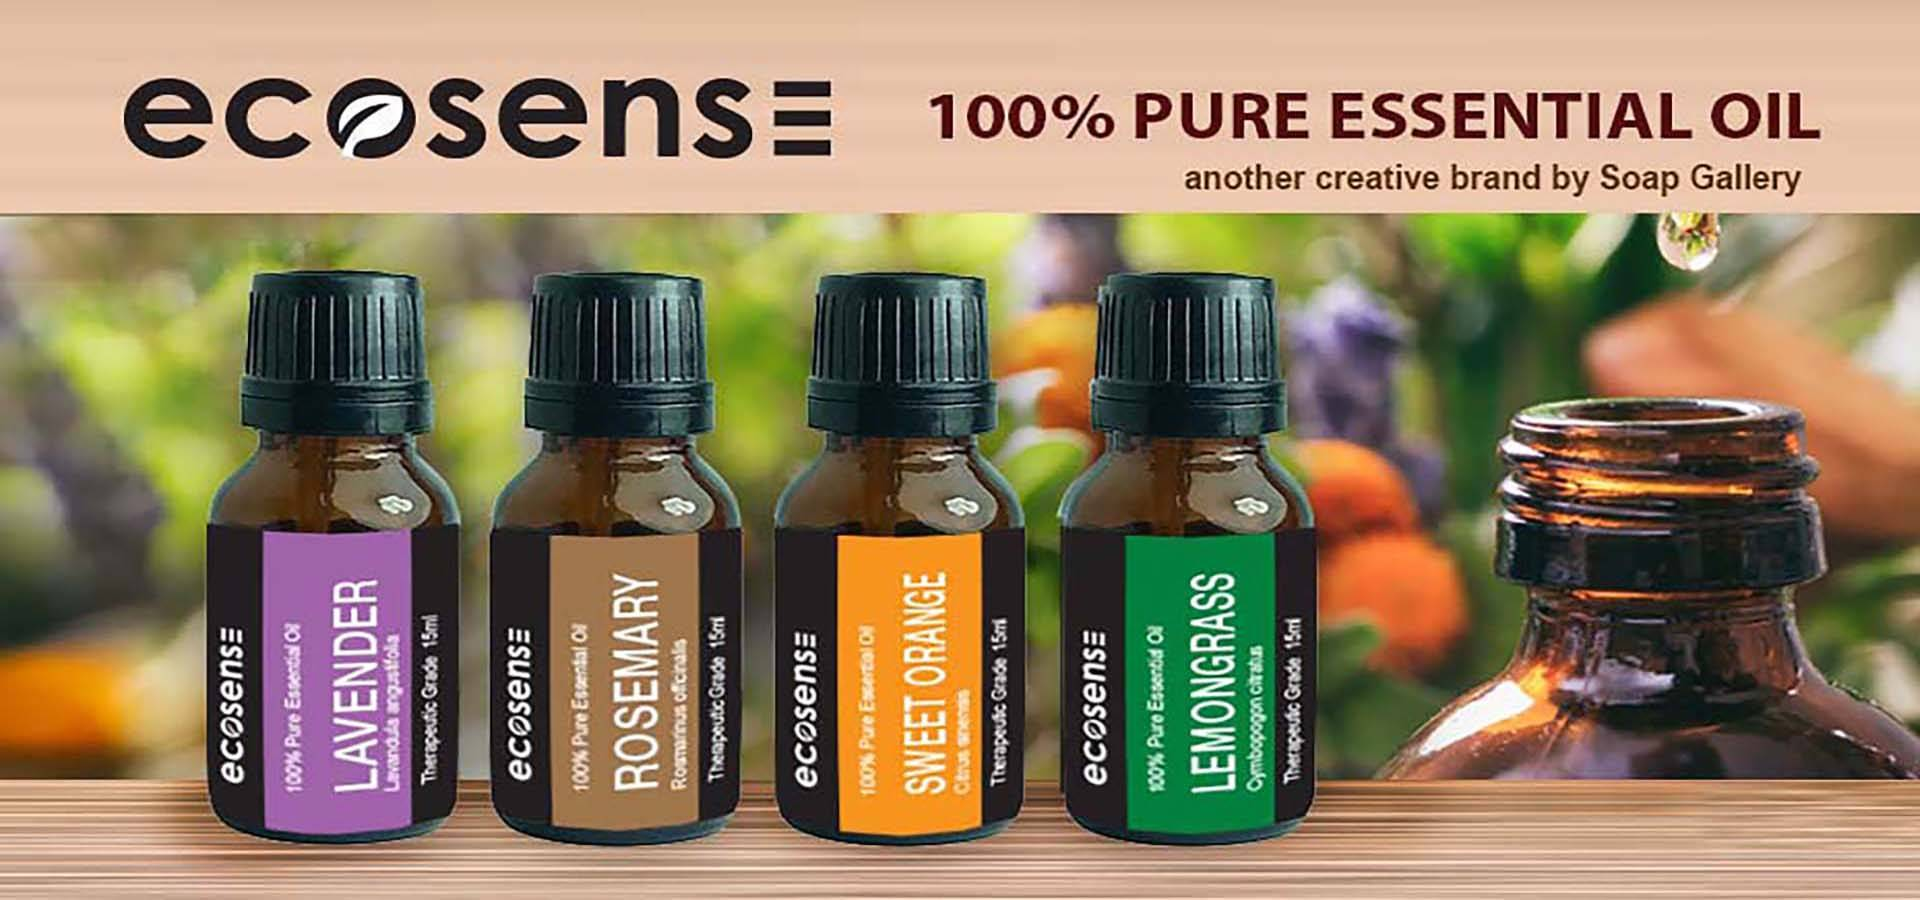 Ecosense Pure Essential Oil